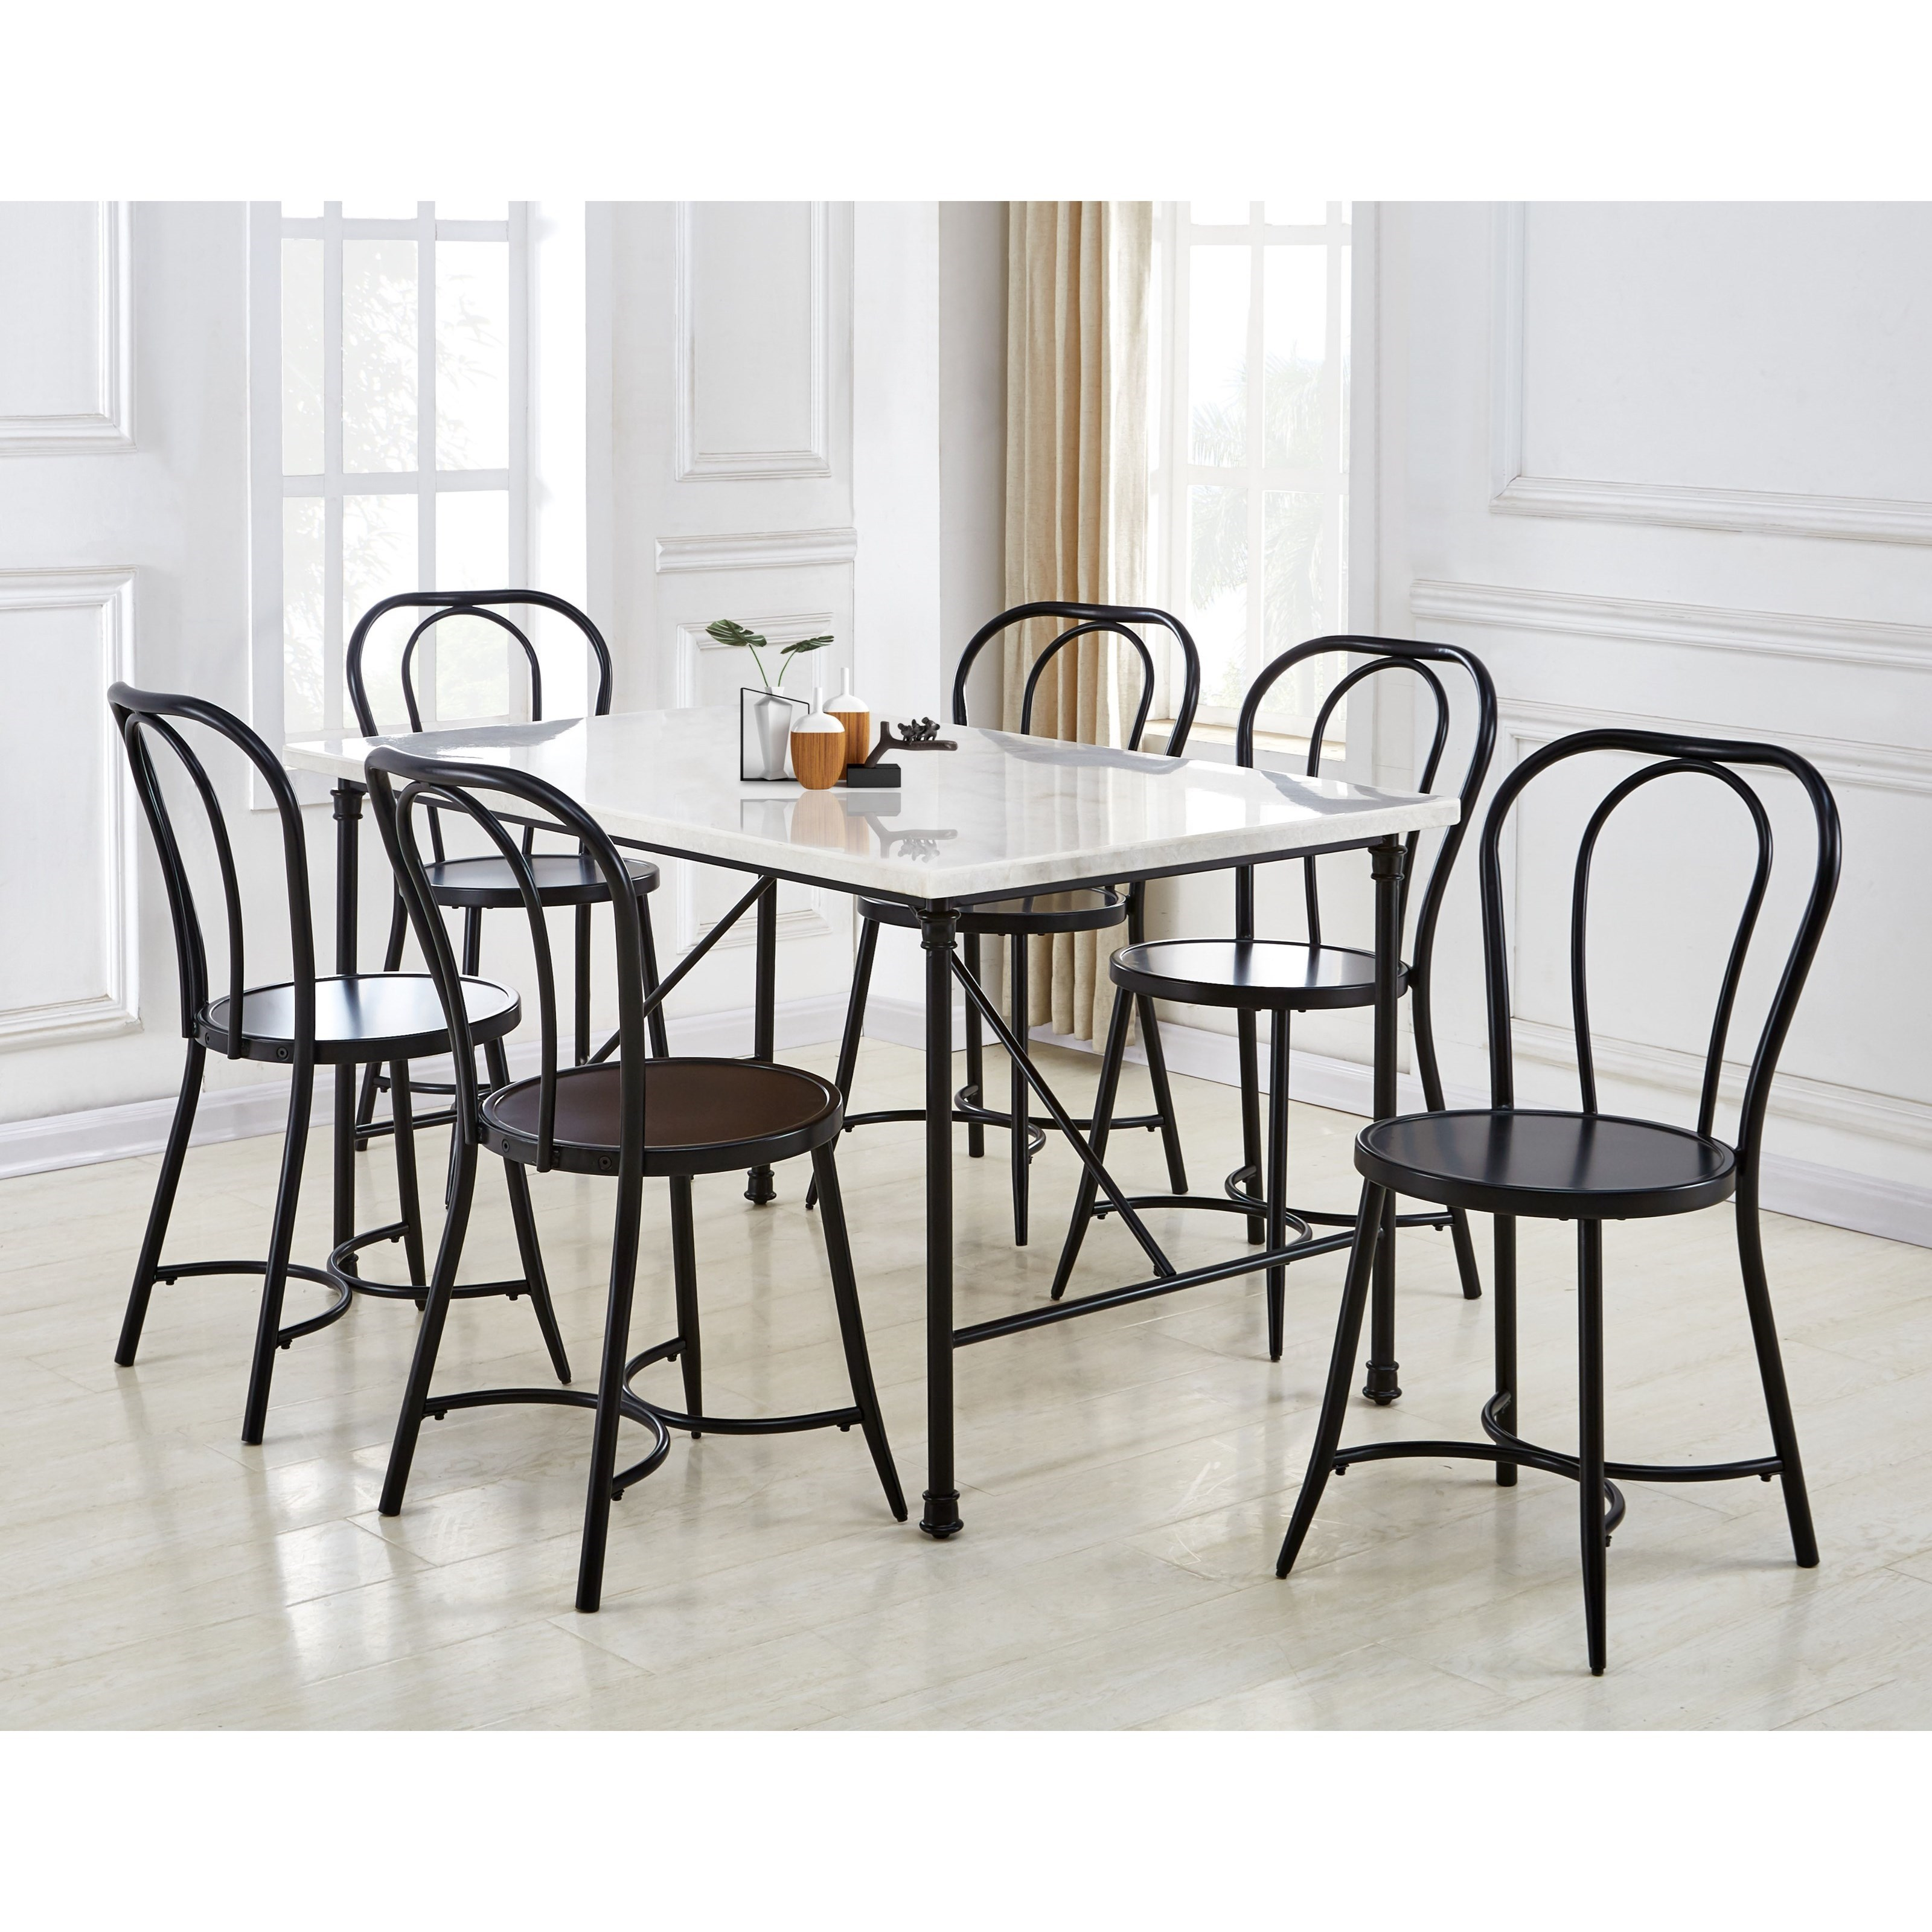 Claire 7-Piece Table and Chair Set by Star at EFO Furniture Outlet